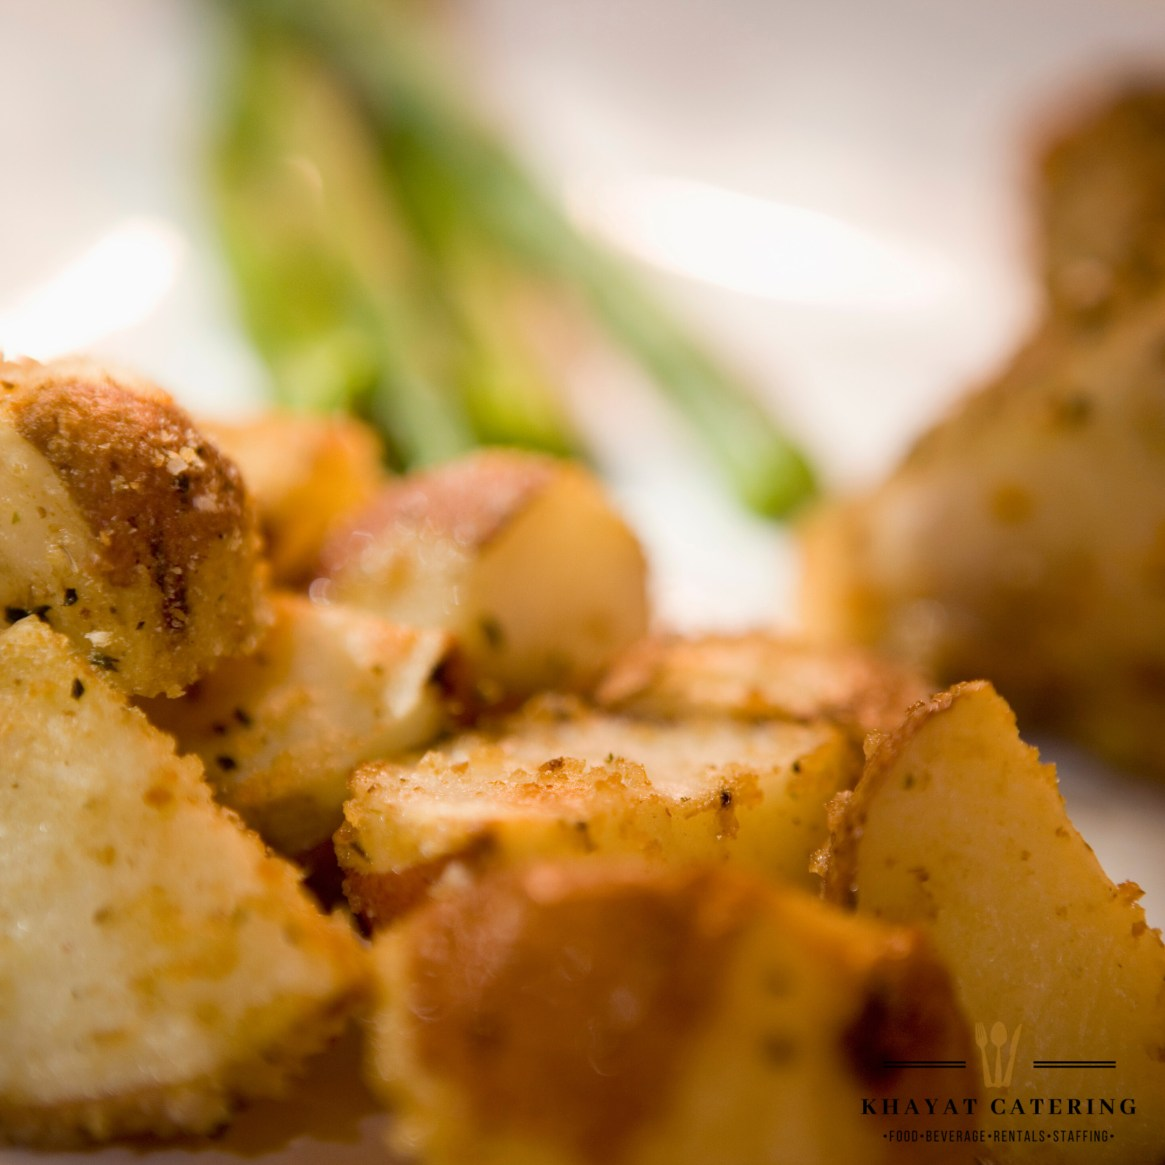 Khayat Catering Roasted Parmesan Potatoes